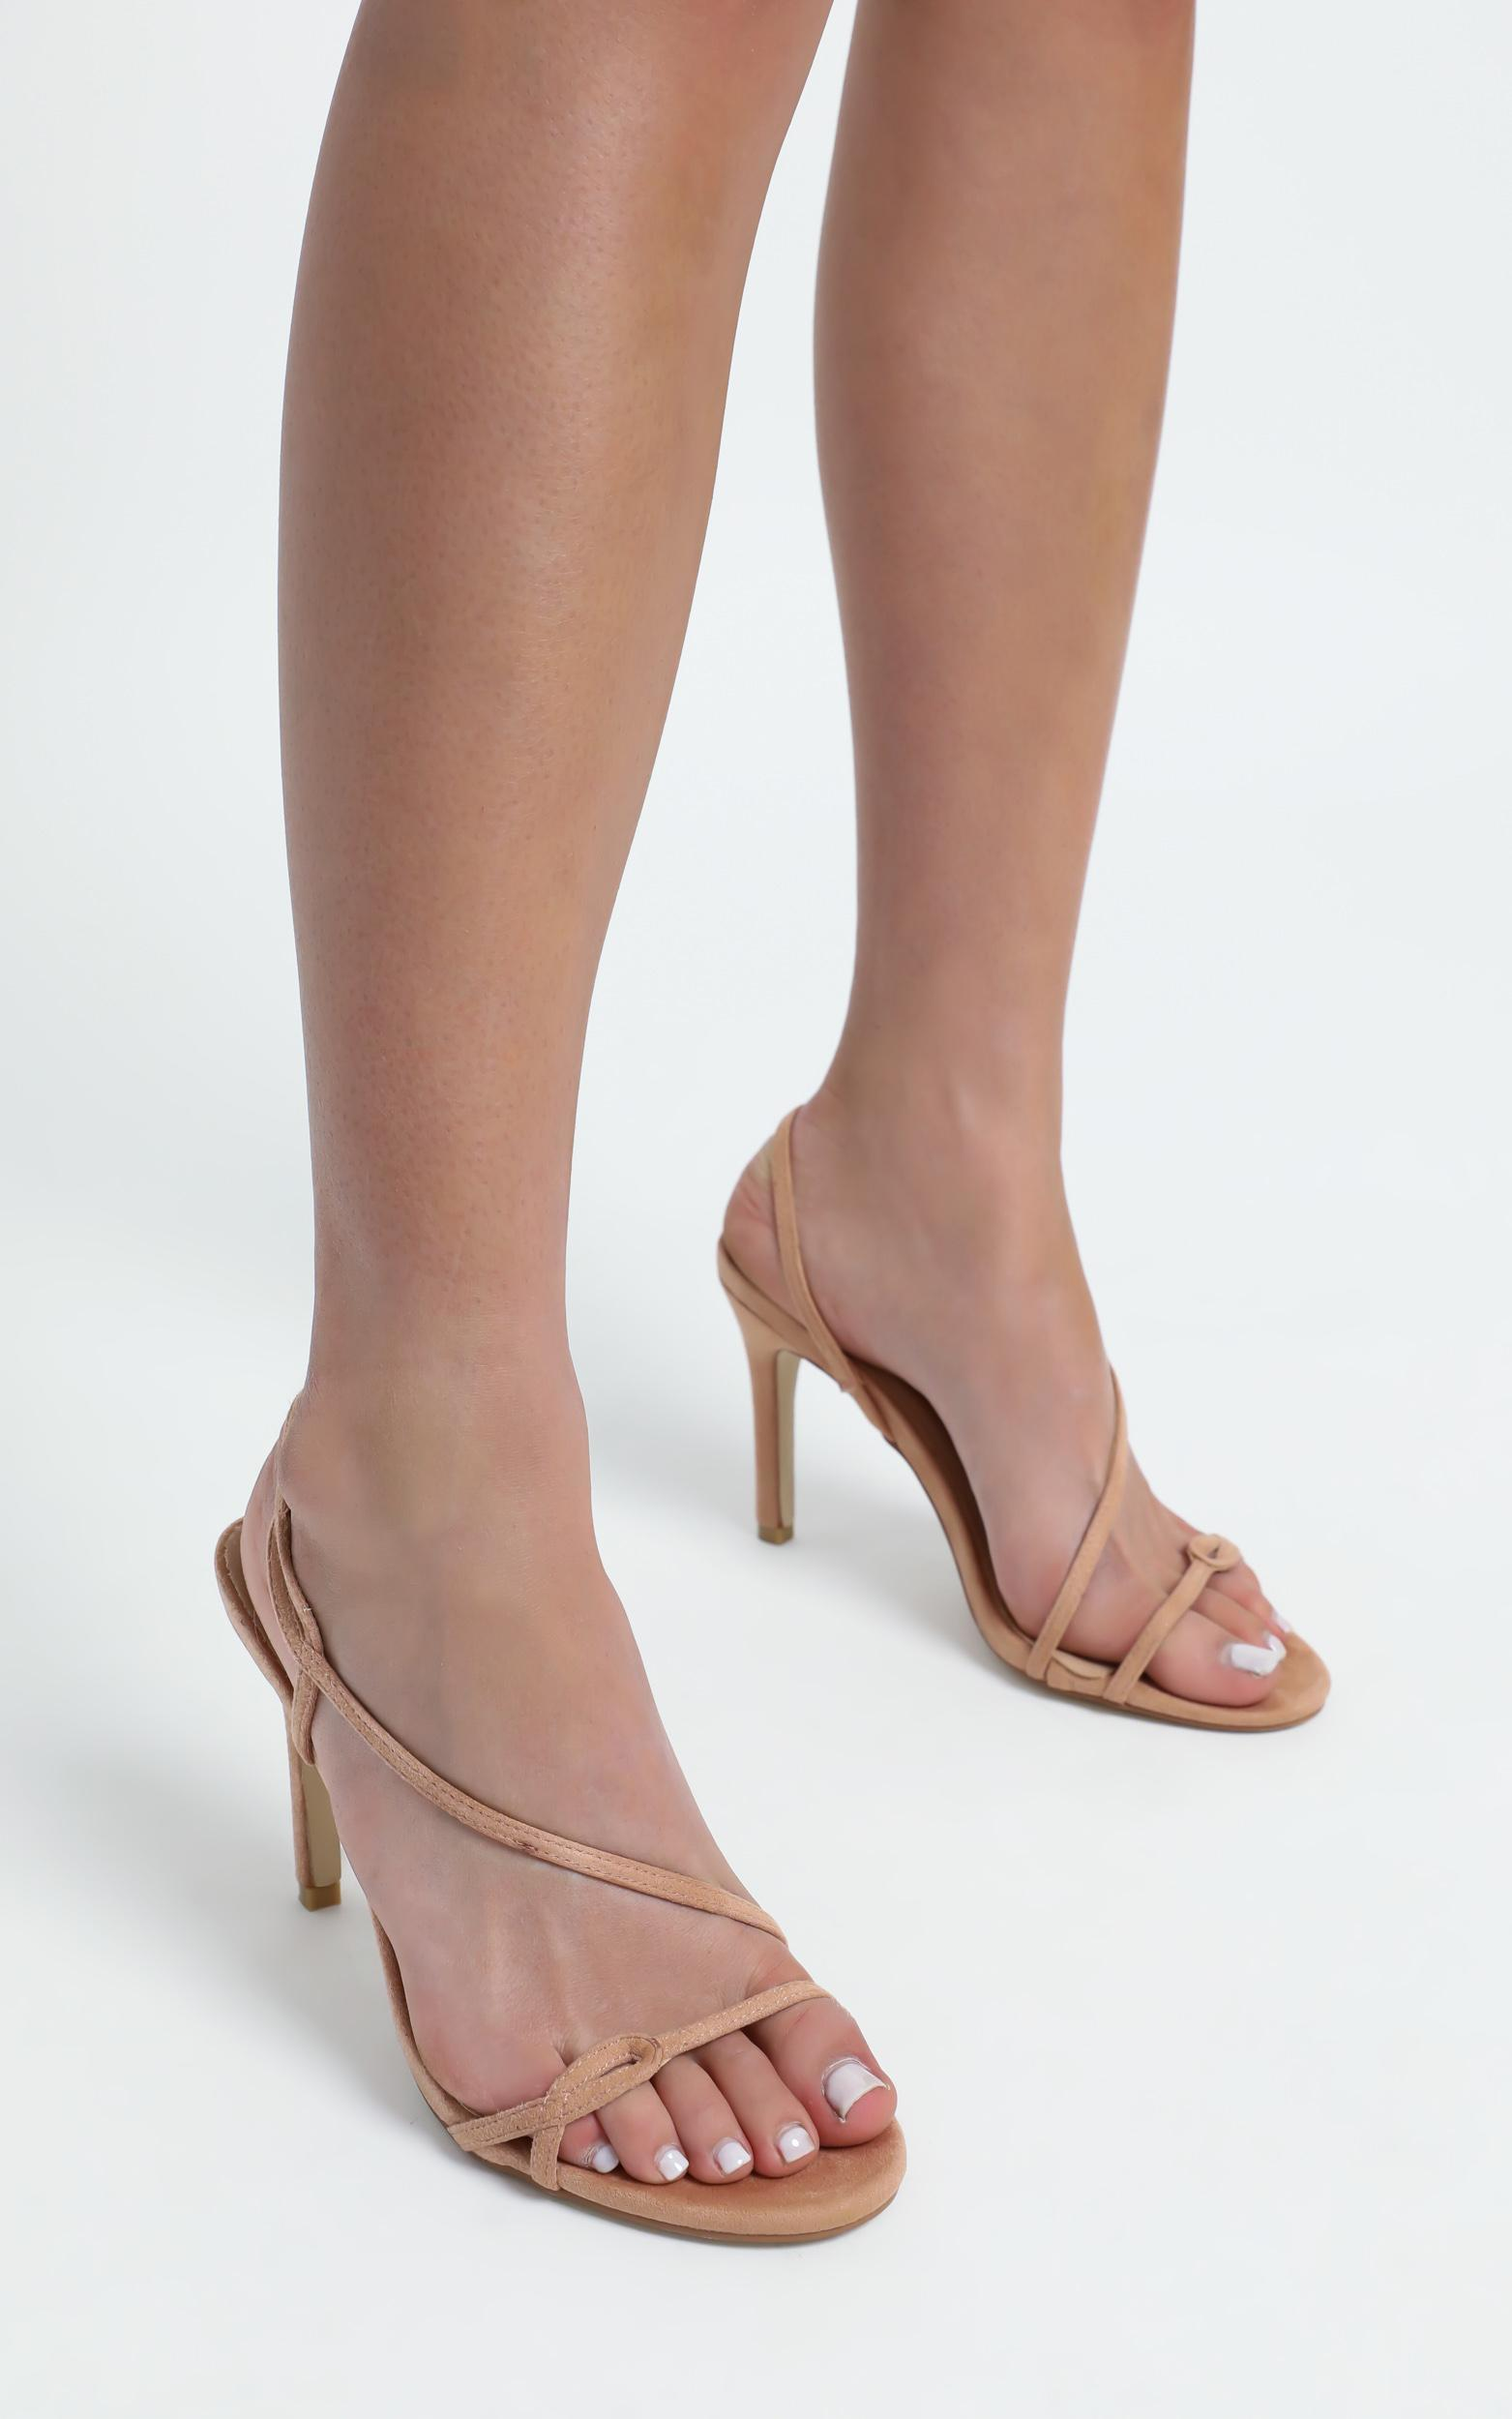 Therapy - Priya Heels in Blush Suedette - 5, Blush, hi-res image number null